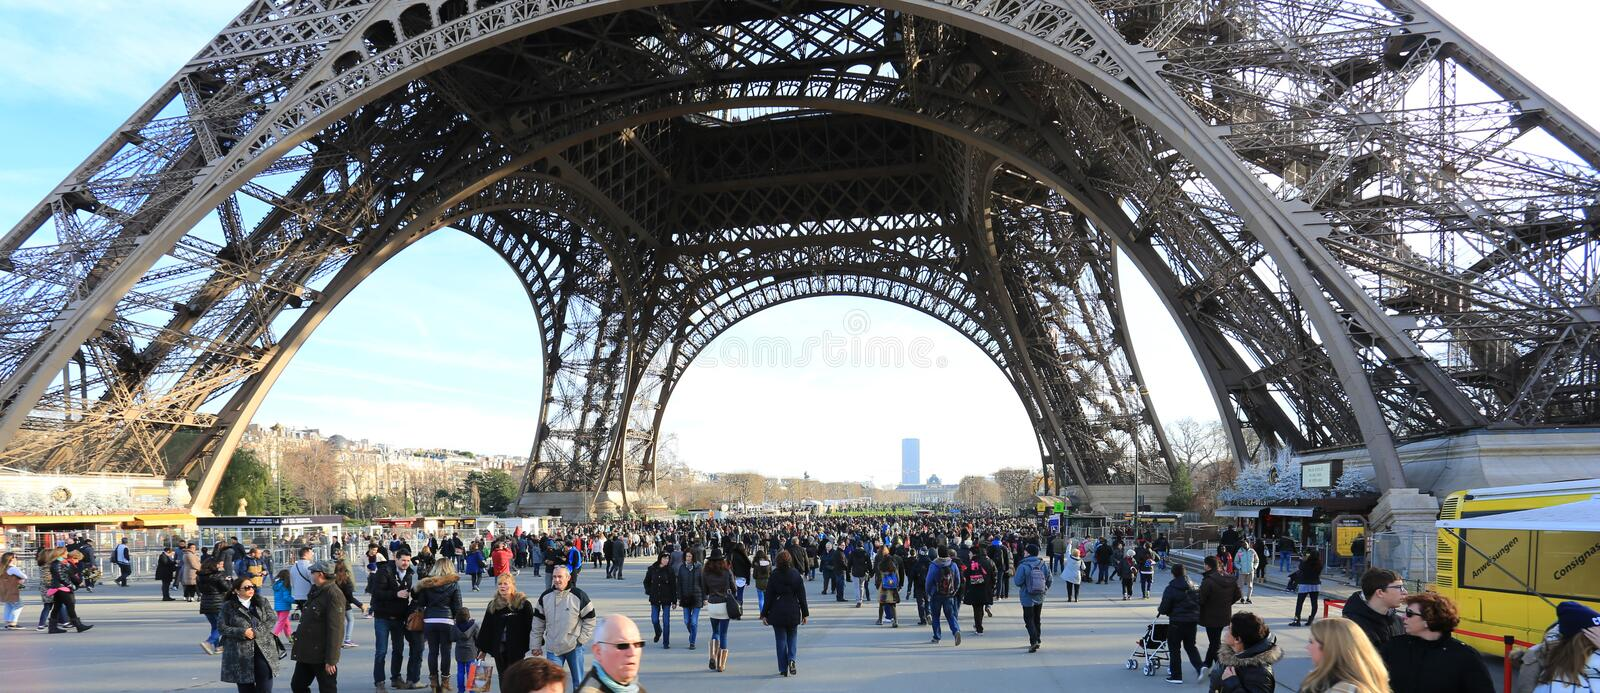 Photo Of the Bottome half of Eiffel Tower stock photos